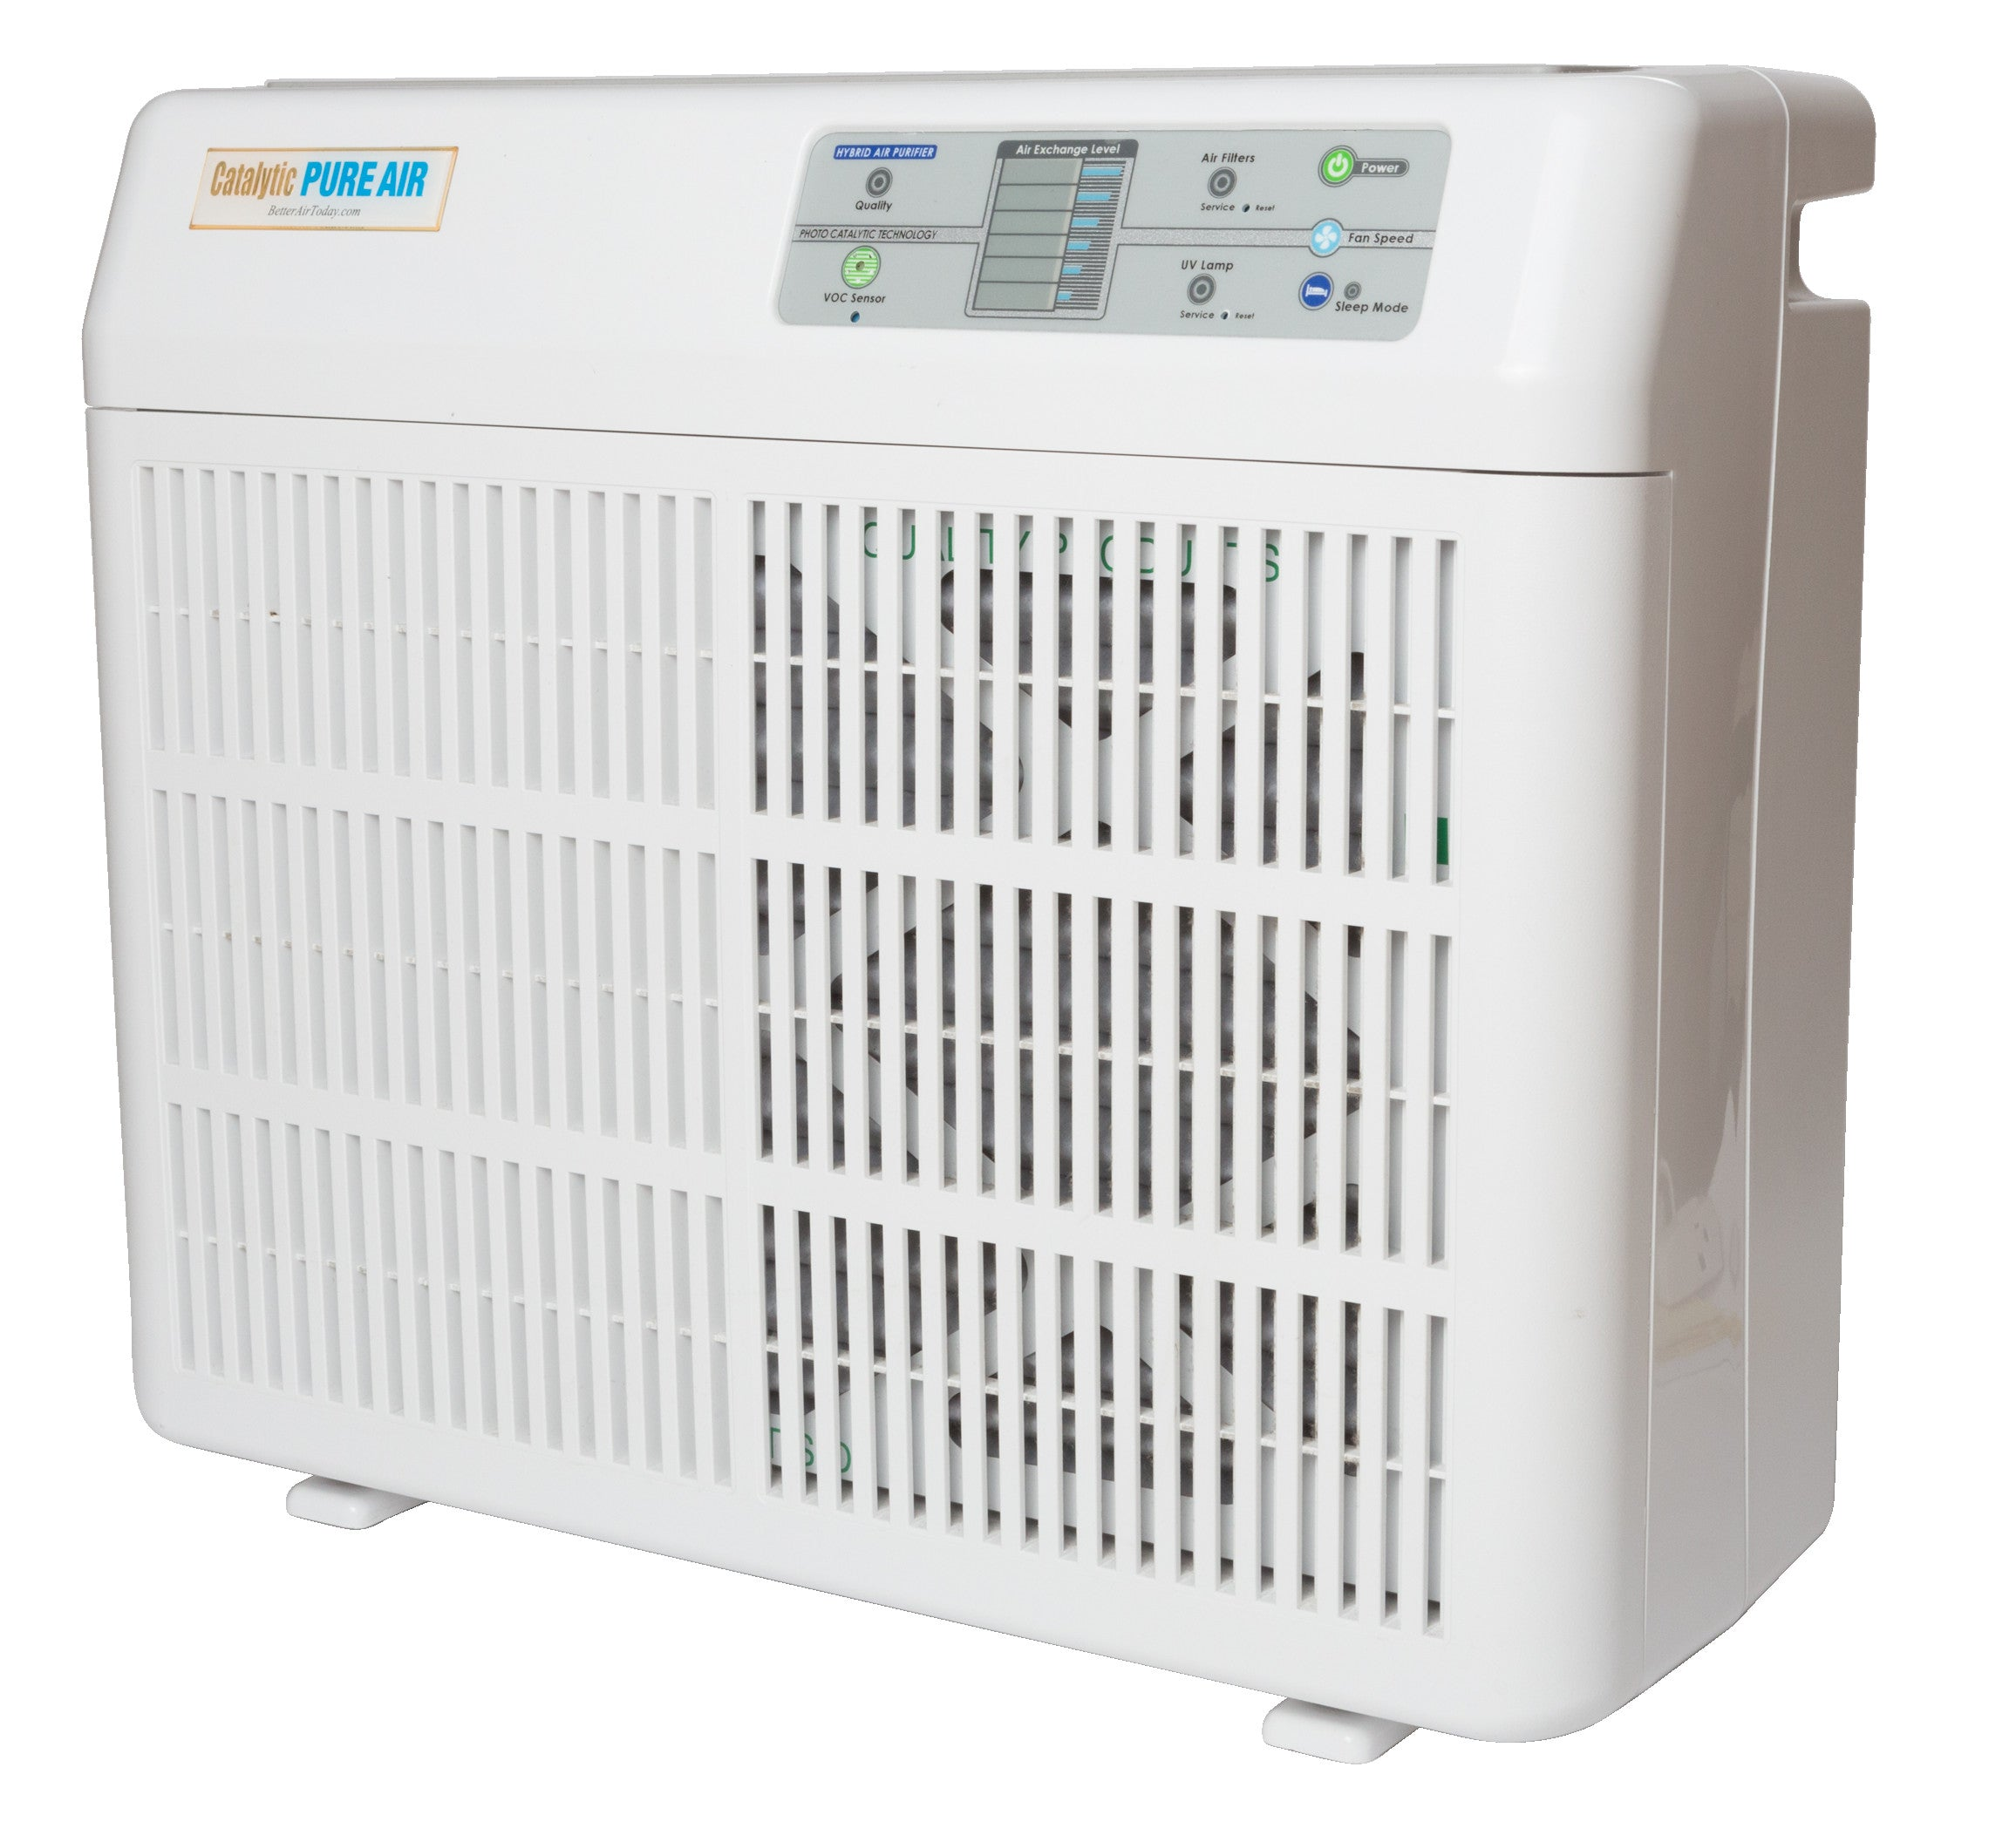 Catalytic PURE AIR Purifier